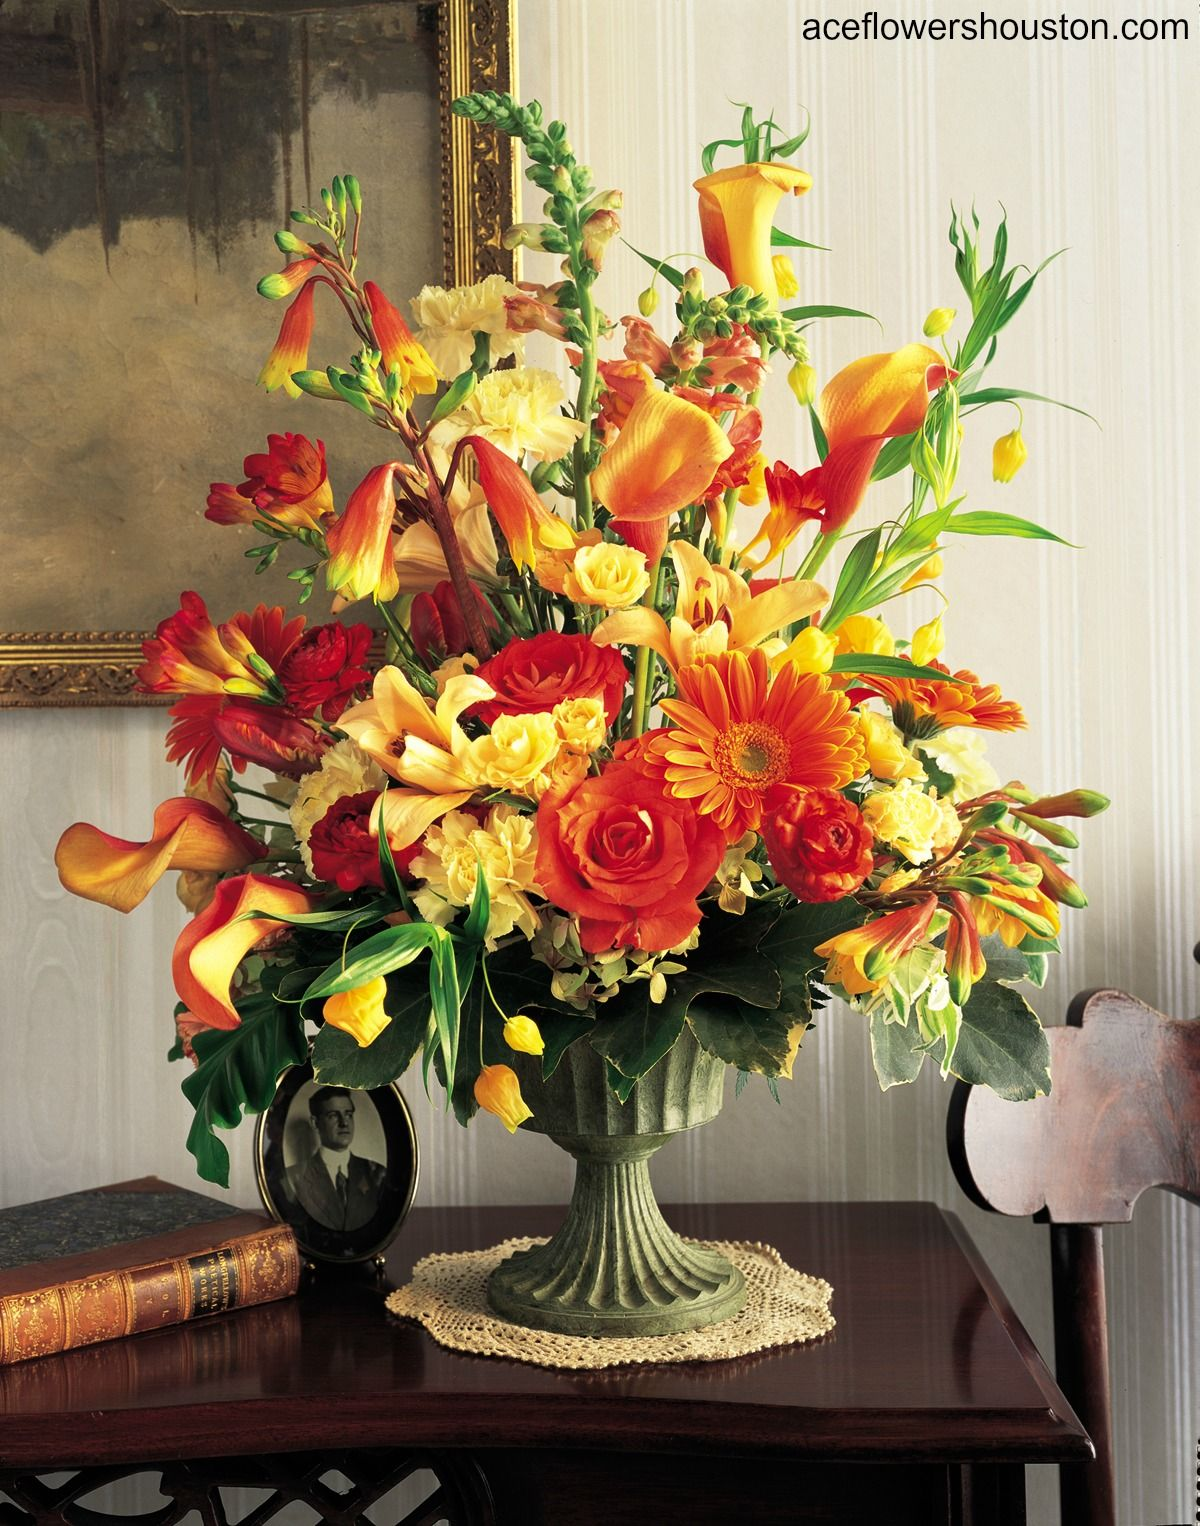 Flowers For Home Decor Flowers Homedecorating The